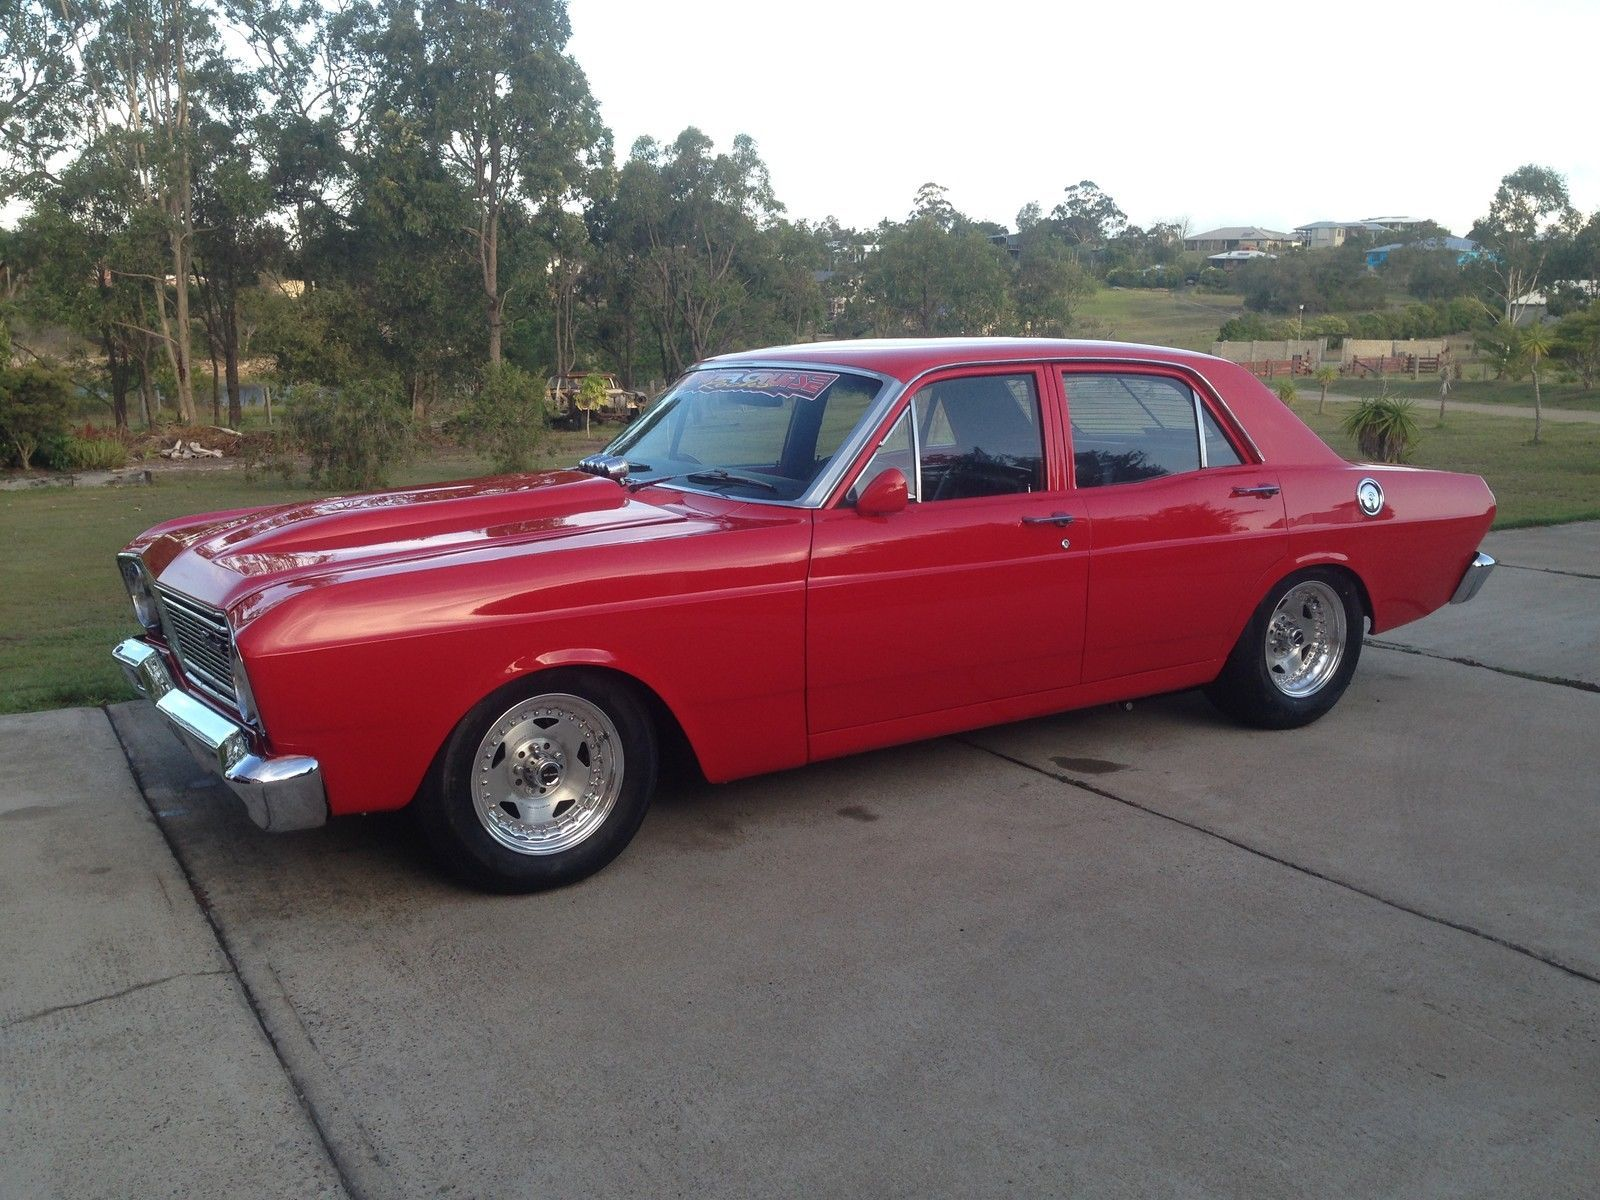 XT FORD FAIRMONT in Cars, Bikes, Boats, Cars, Collector Cars | eBay ...